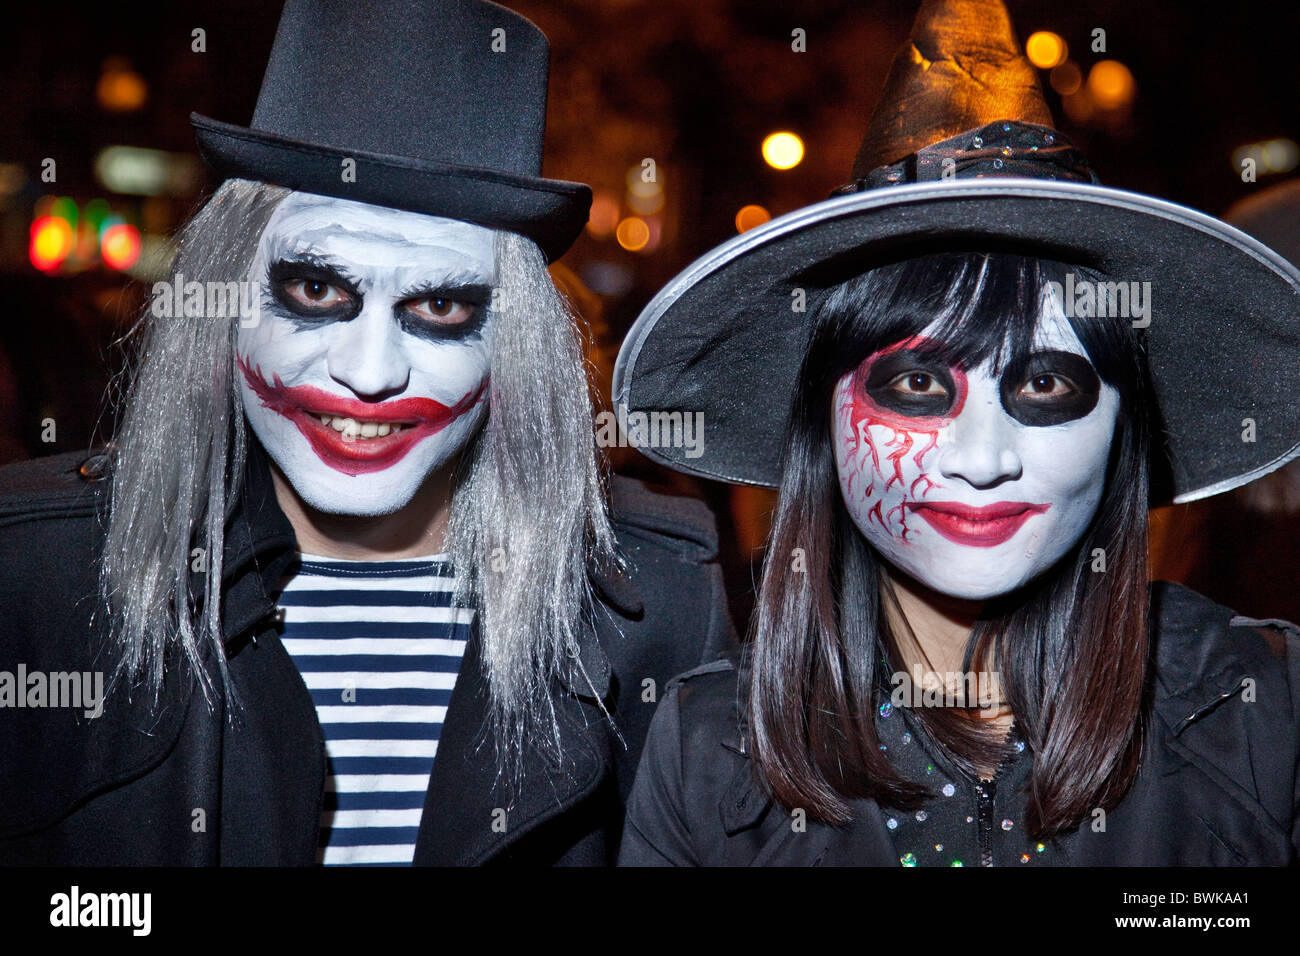 Scary mime-face couple at the NYC Greenwich Village Halloween Parade  sc 1 st  Alamy & Scary mime-face couple at the NYC Greenwich Village Halloween Parade ...